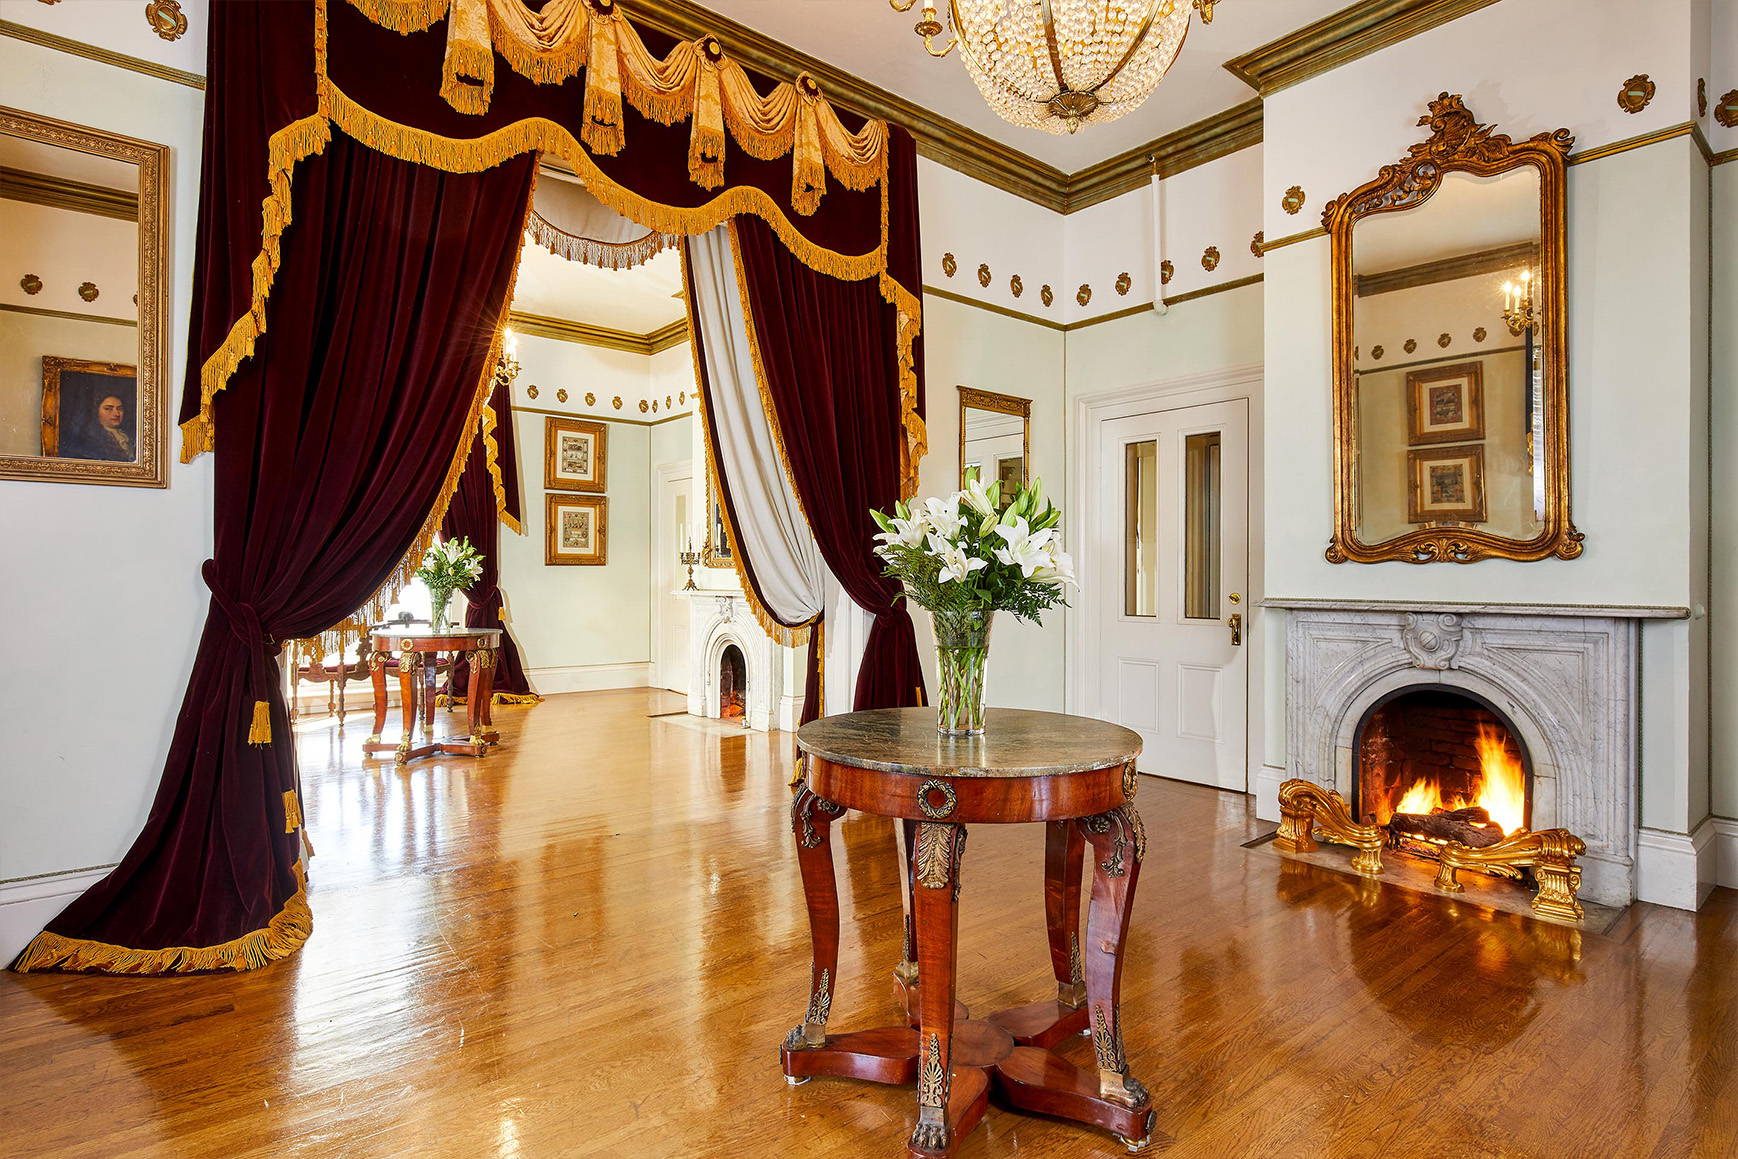 Colonial Fixtures at This Extravagant Historic Manor With Bay Views and Superb Gardens